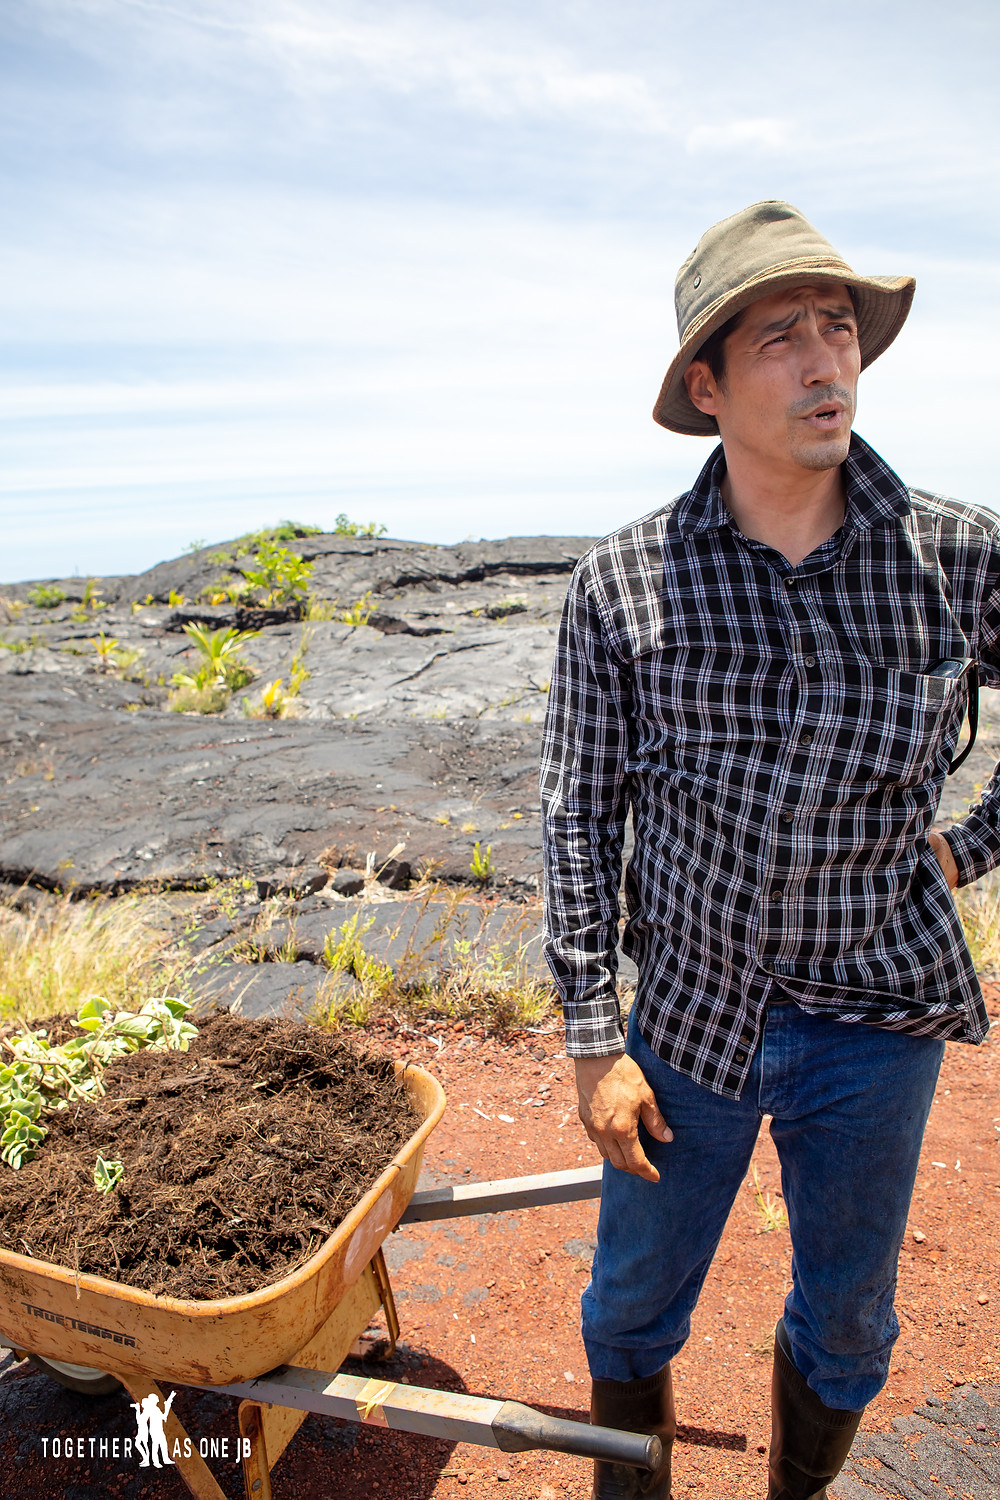 Volunteers from The Center for Getting Things Started with wheel barrow of mulch sharing his experience at the New Black Beach in Big Island Hawaii